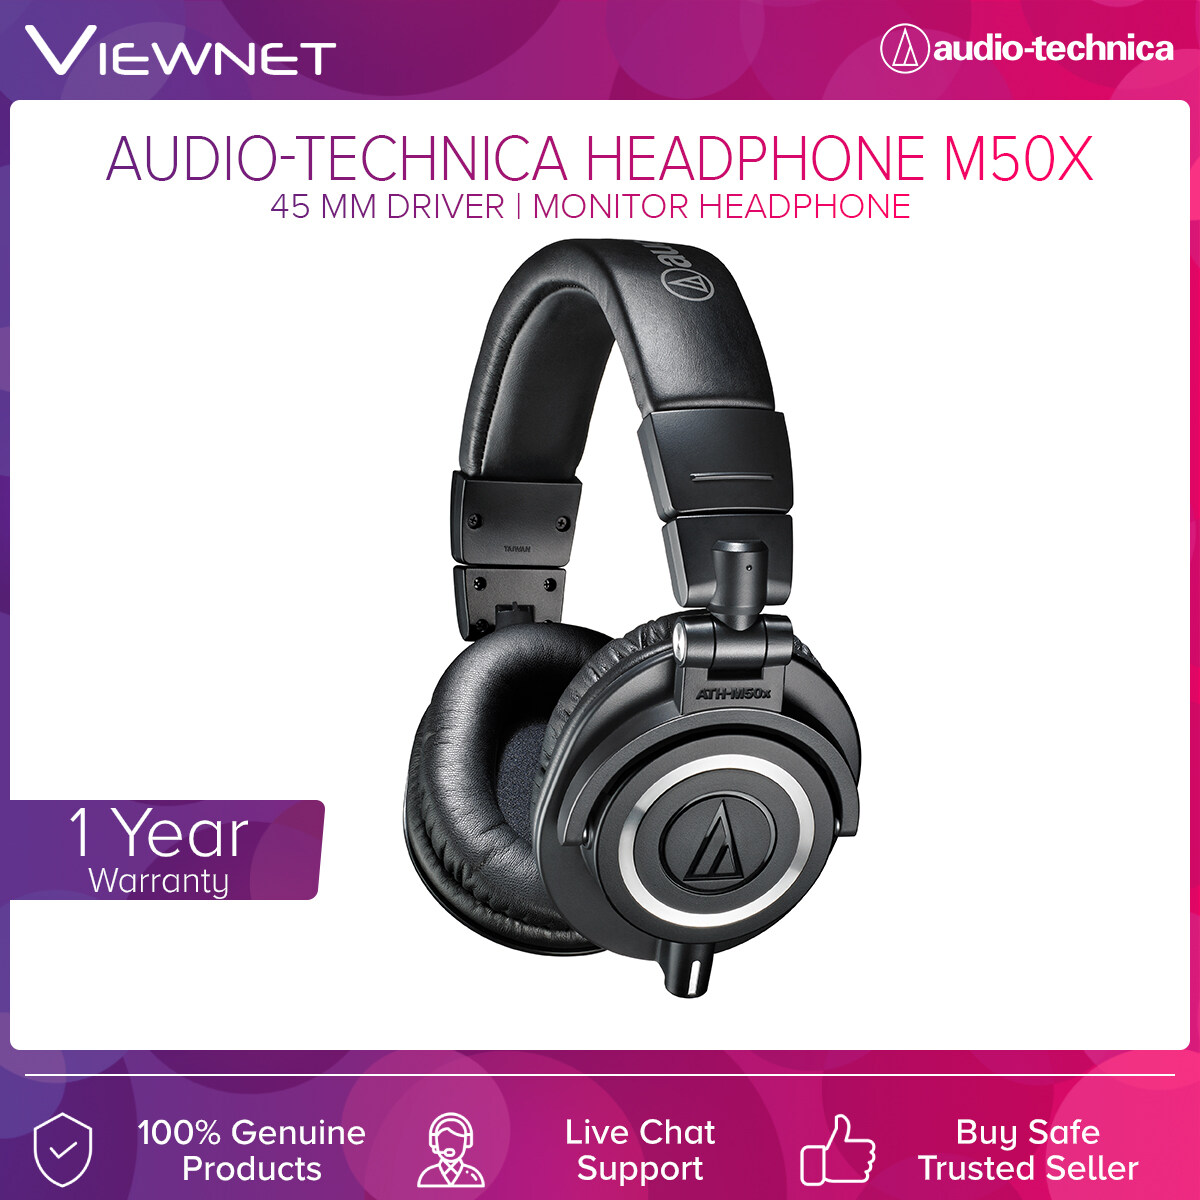 Audio-Technica Professional Monitor Headphones ATH-M50X with 45mm Driver, Copper-Clad Aluminum Wire, 3 Meter Length Cable, 15 - 28,000 Hz